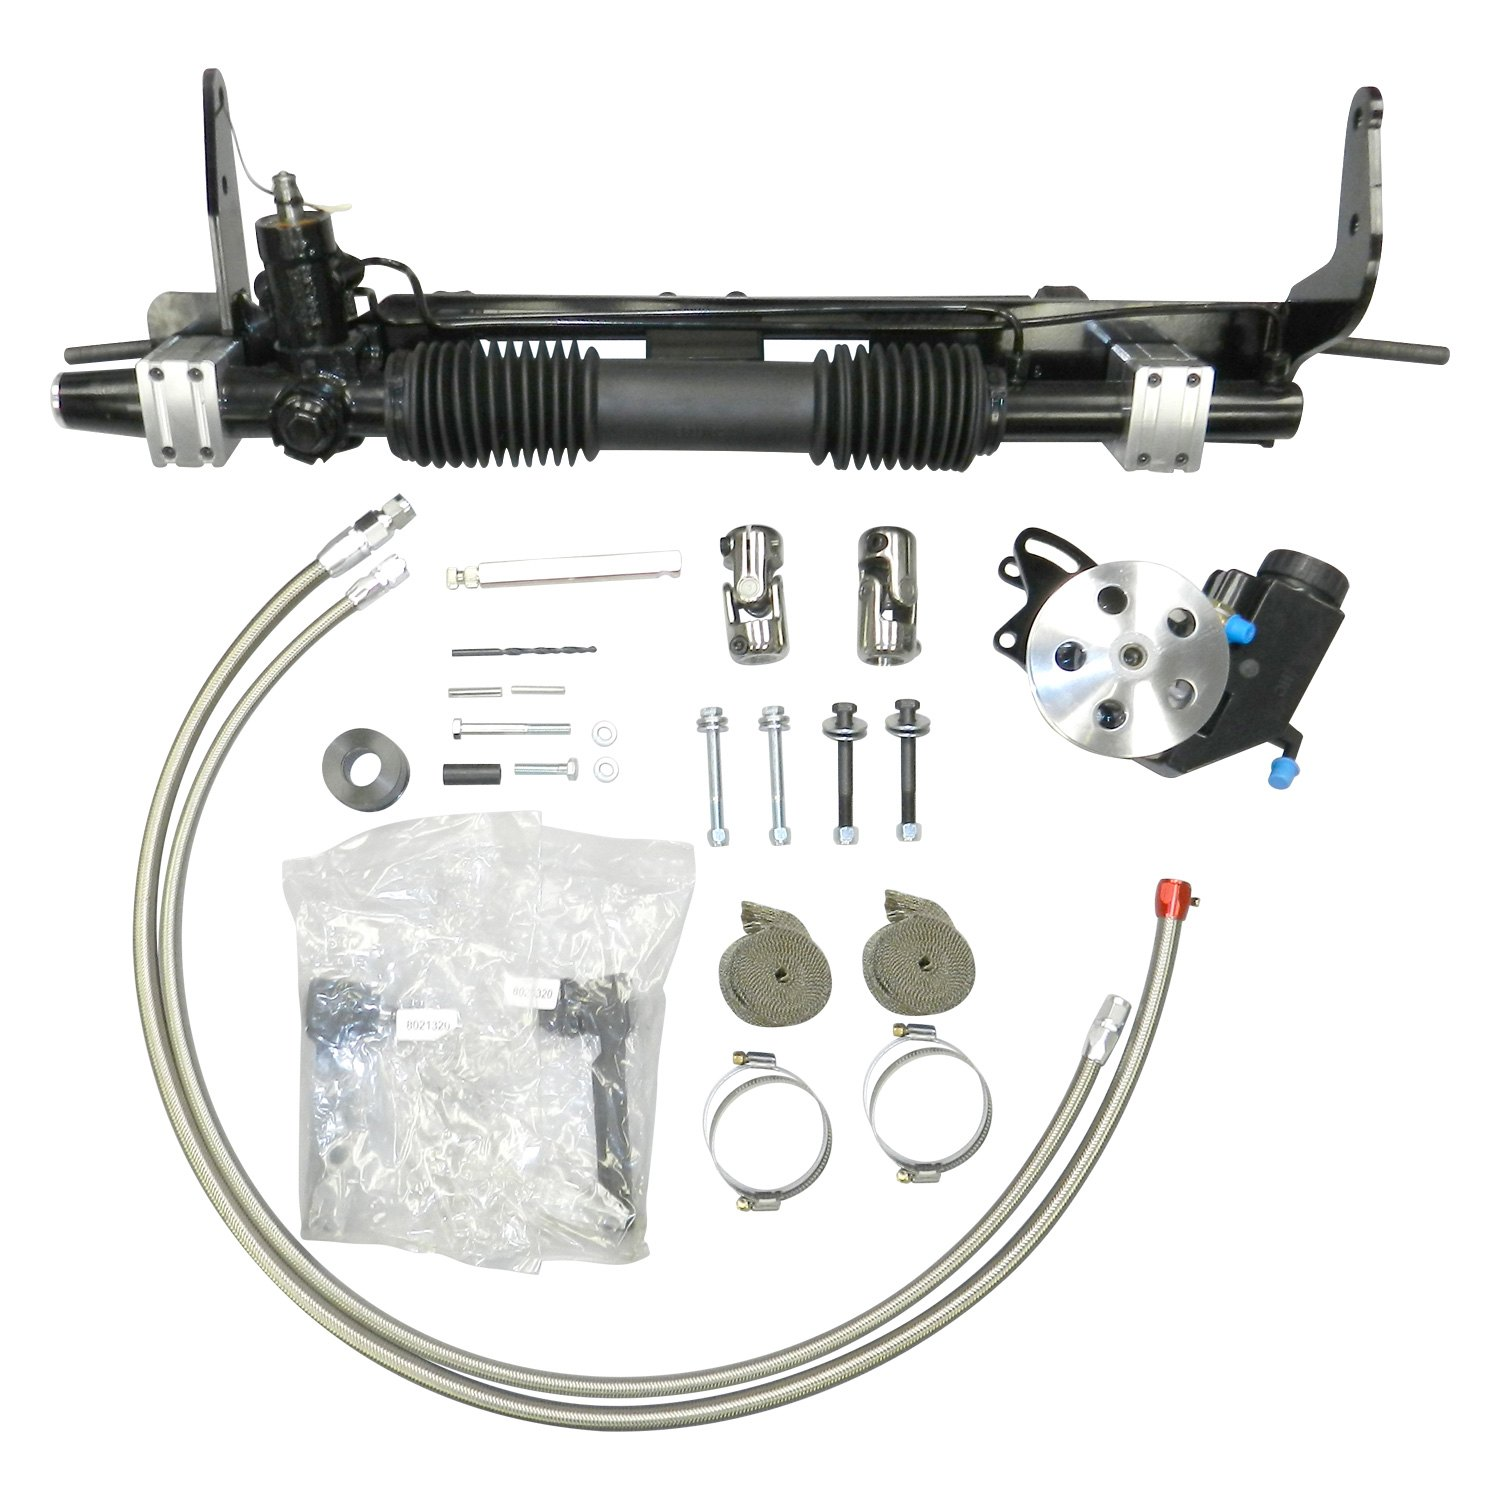 Unisteer Ford Torino Power Steering With Left Hand Drive 1968 Bolt Conversion Kit Pump Hydraulic Rack And Pinion